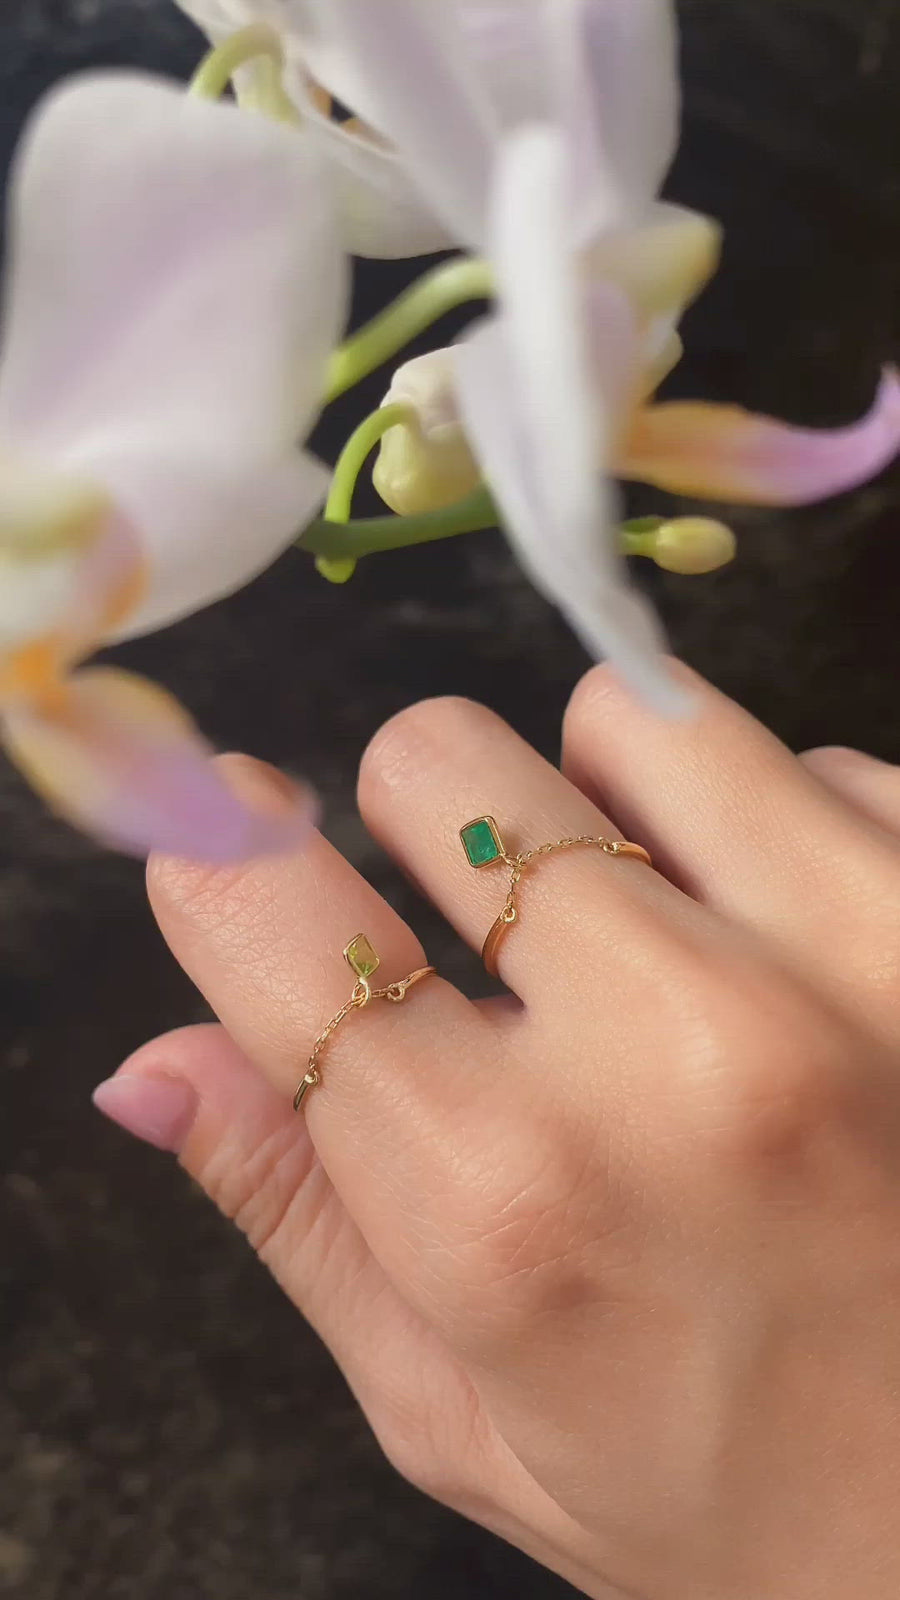 Yi Collection x Opening Ceremony Emerald Ring: Silver with 14k gold plating